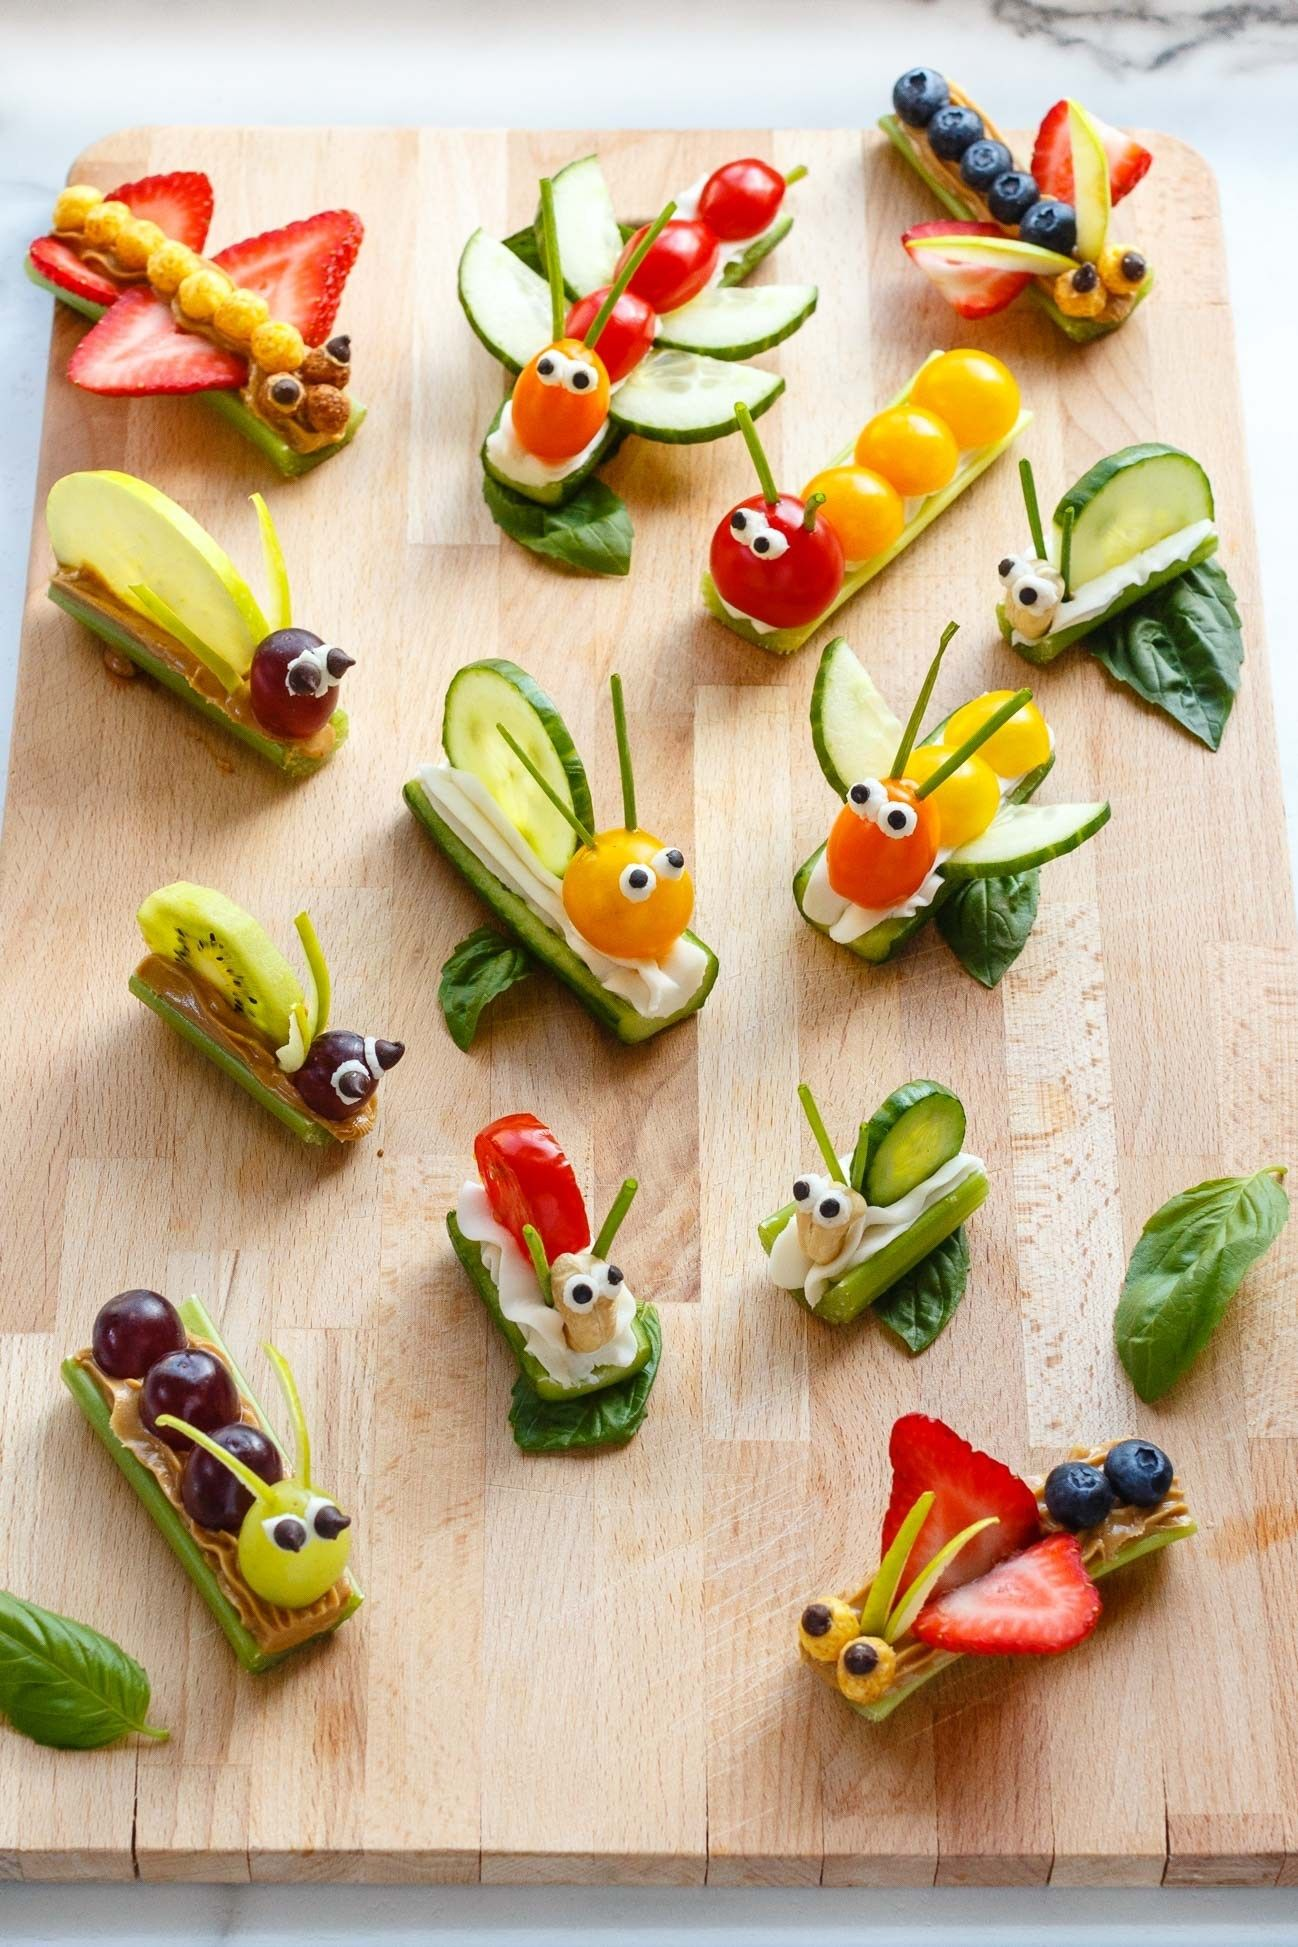 Fruit & Vegetable Bug Snacks for Envirokidz | The Fair Tree #eyeshaveit